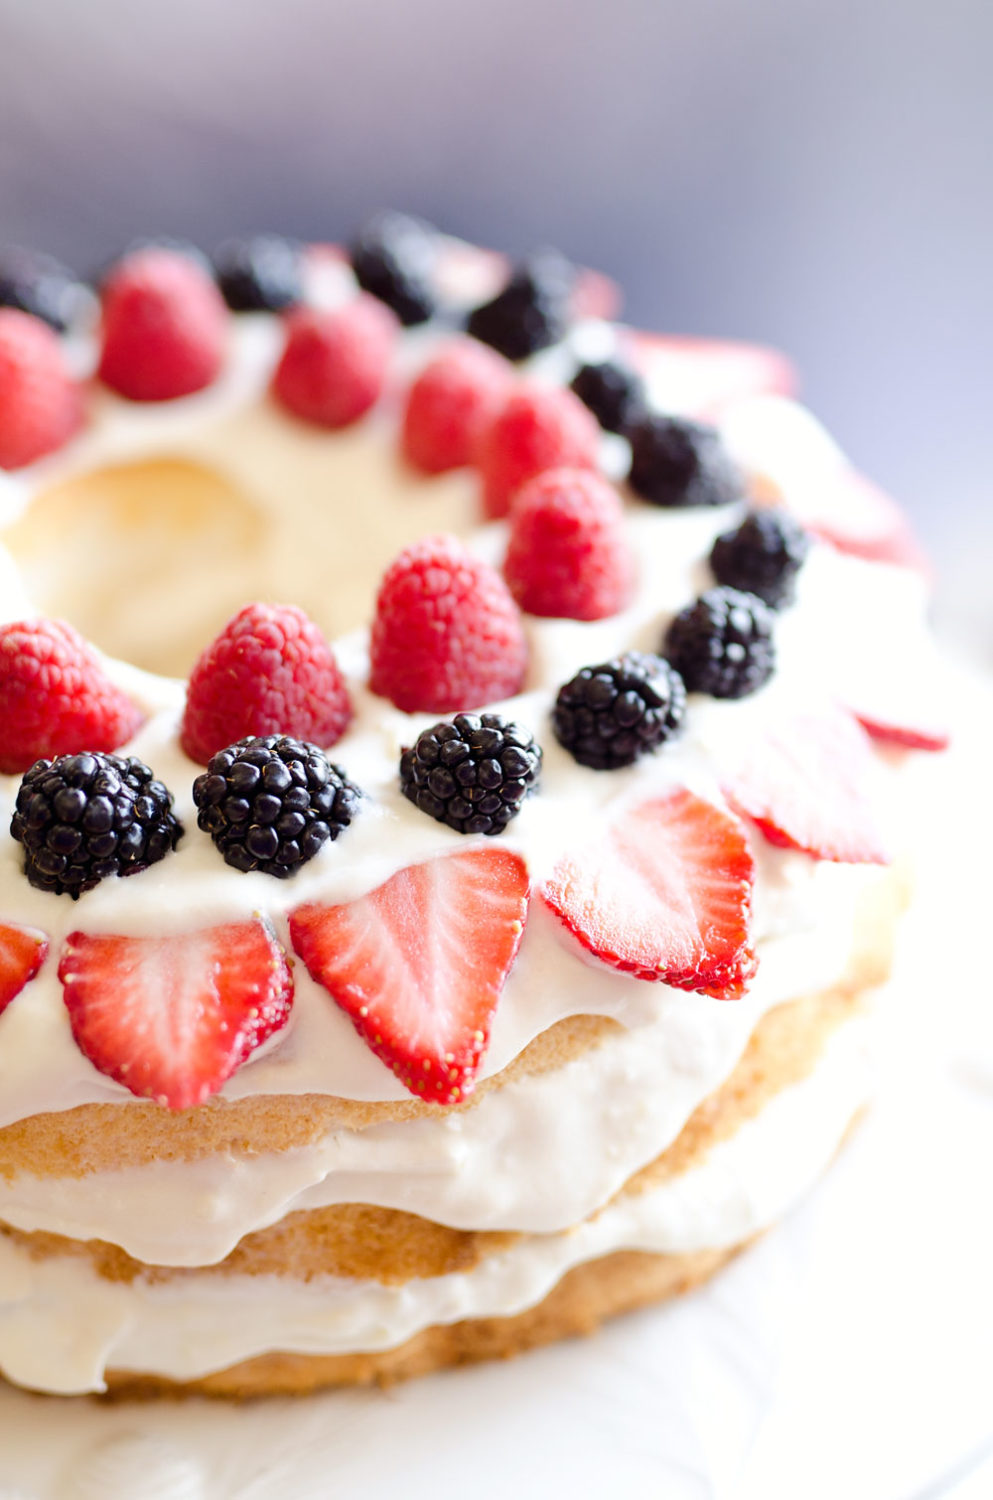 Light-Berry-Angel-Food-Cake-The-Creative-Bite-3-copy